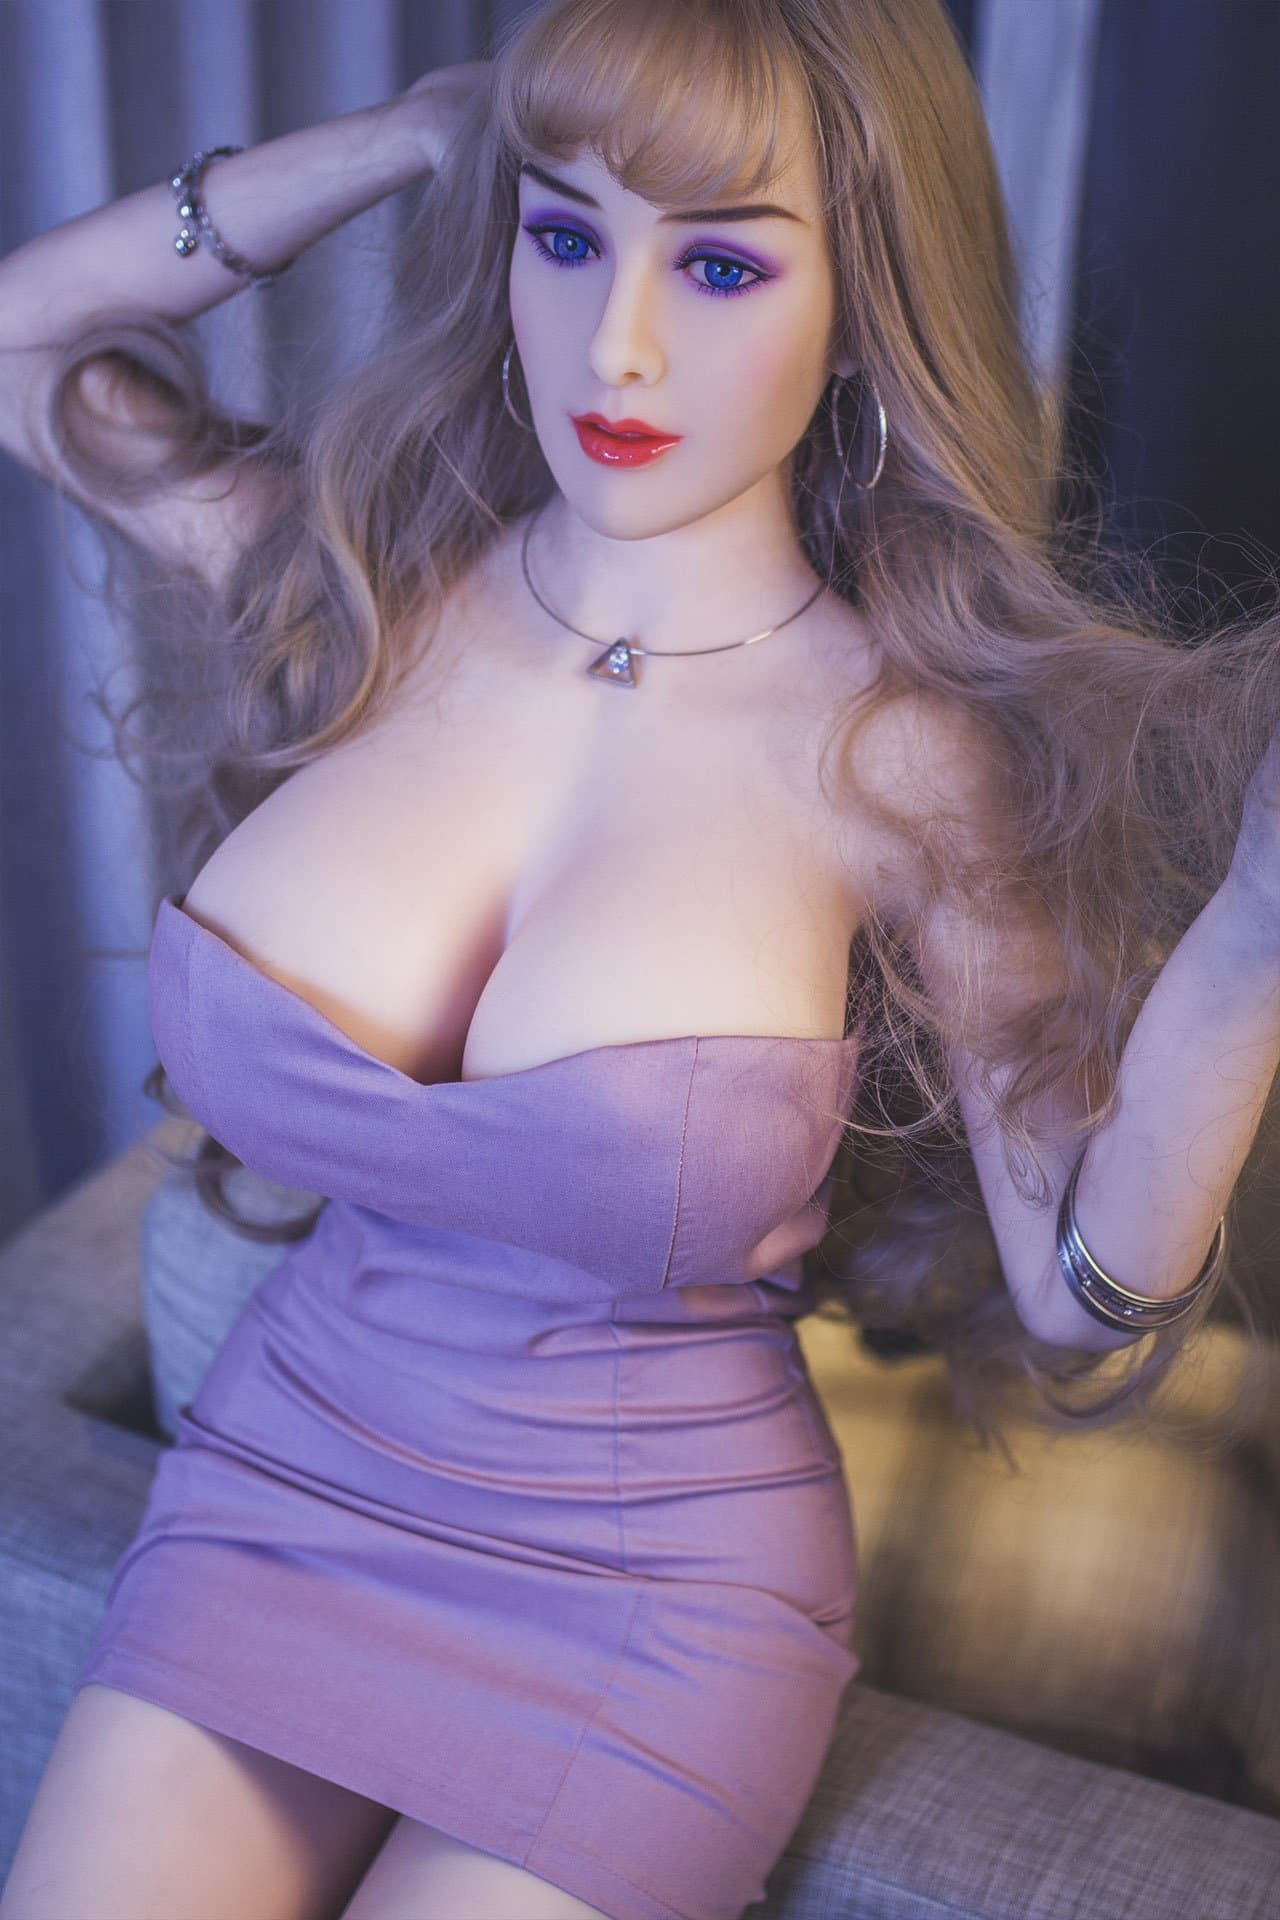 autumn 163cm brown hair curvy jy big boobs sex doll(4)